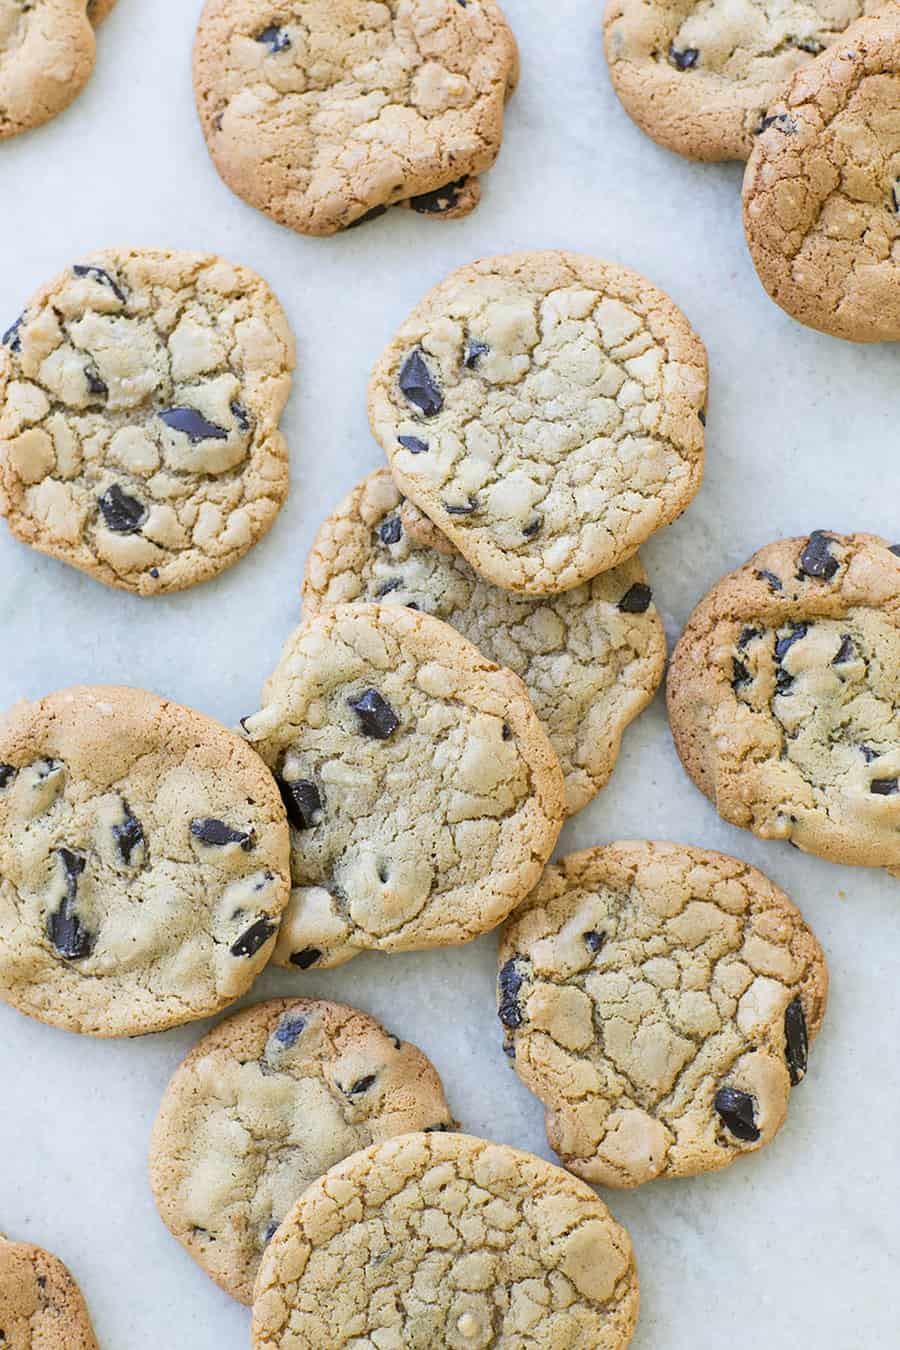 Butter-less chocolate chip cookies on parchment paper